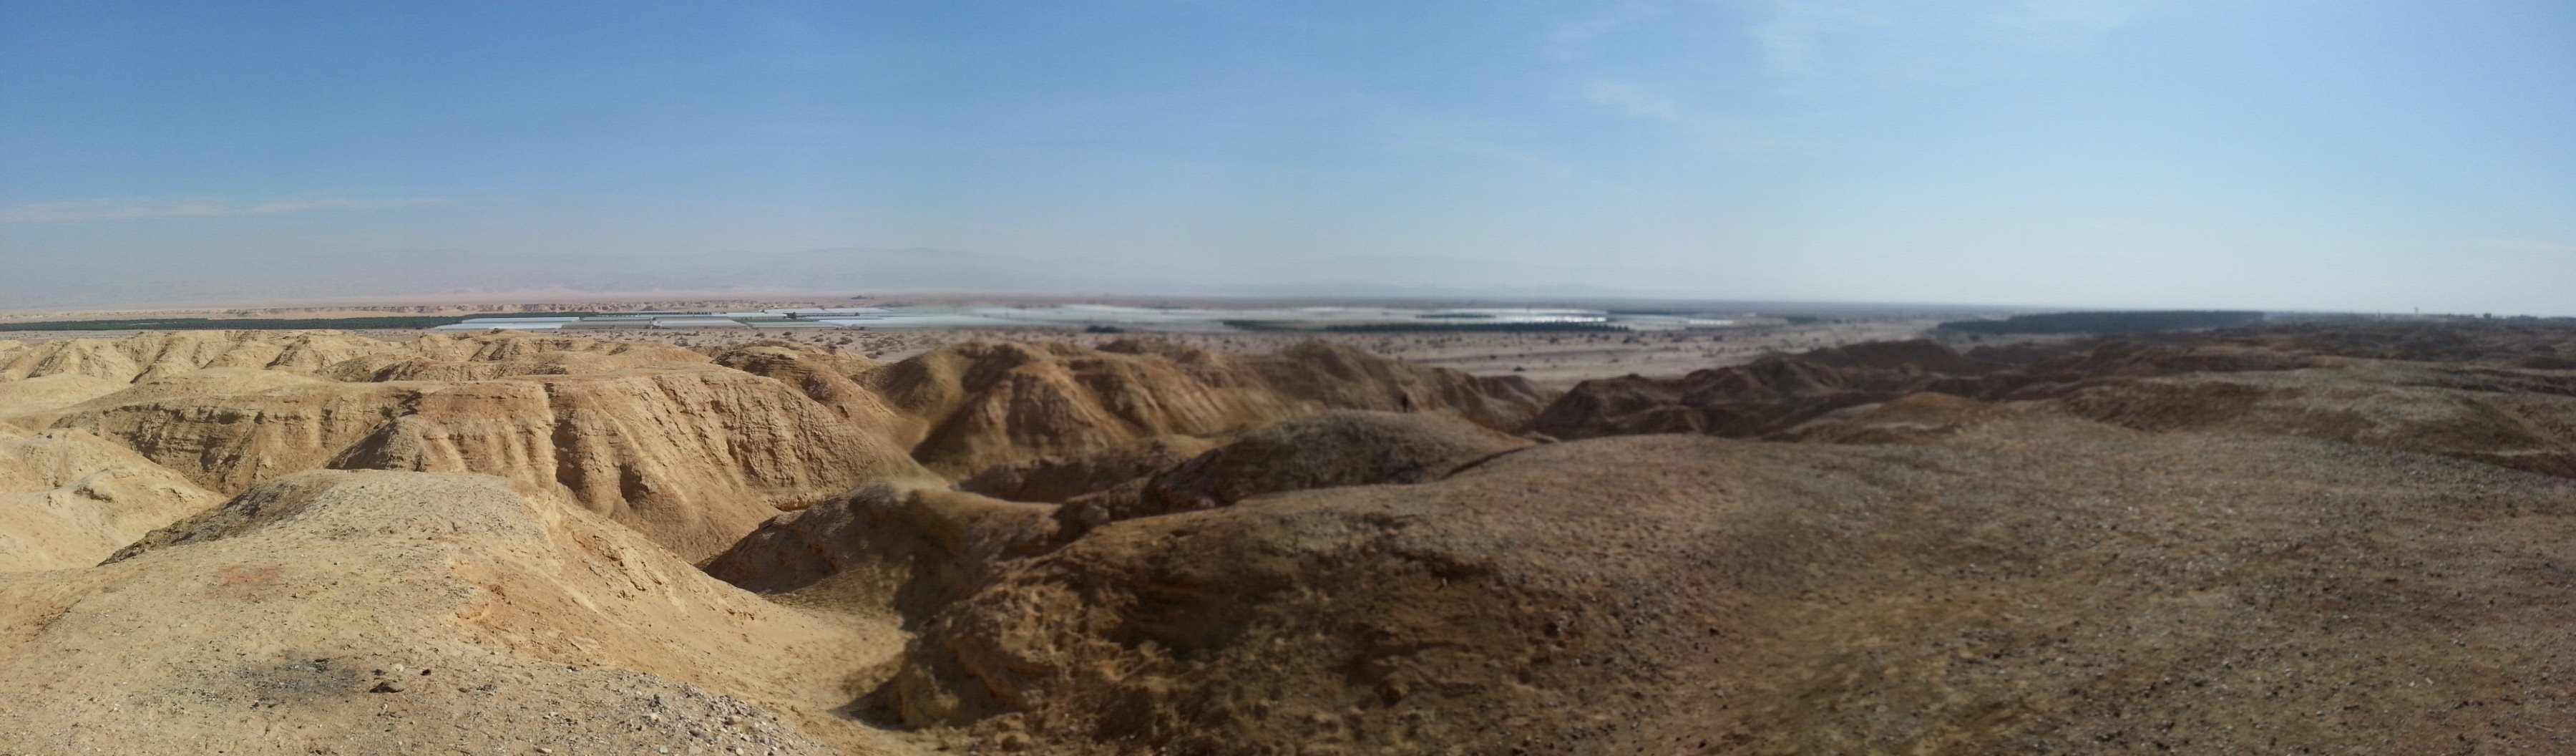 View from the Peace Lookout in the Arava Valley